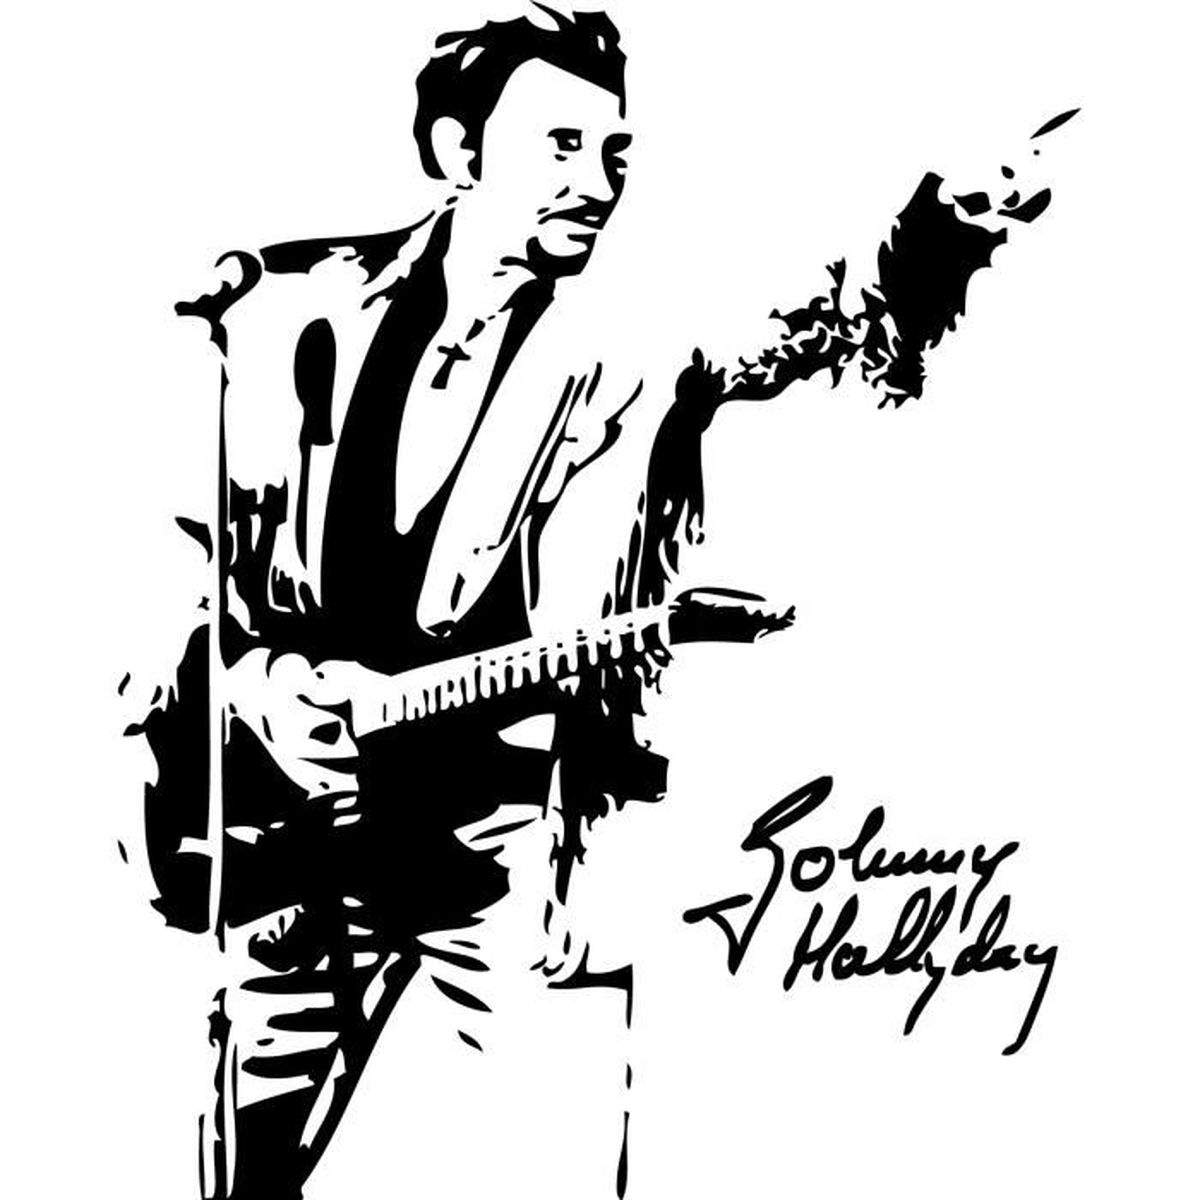 Sticker johnny hallyday 101 57x71 cm achat vente for Miroir johnny hallyday